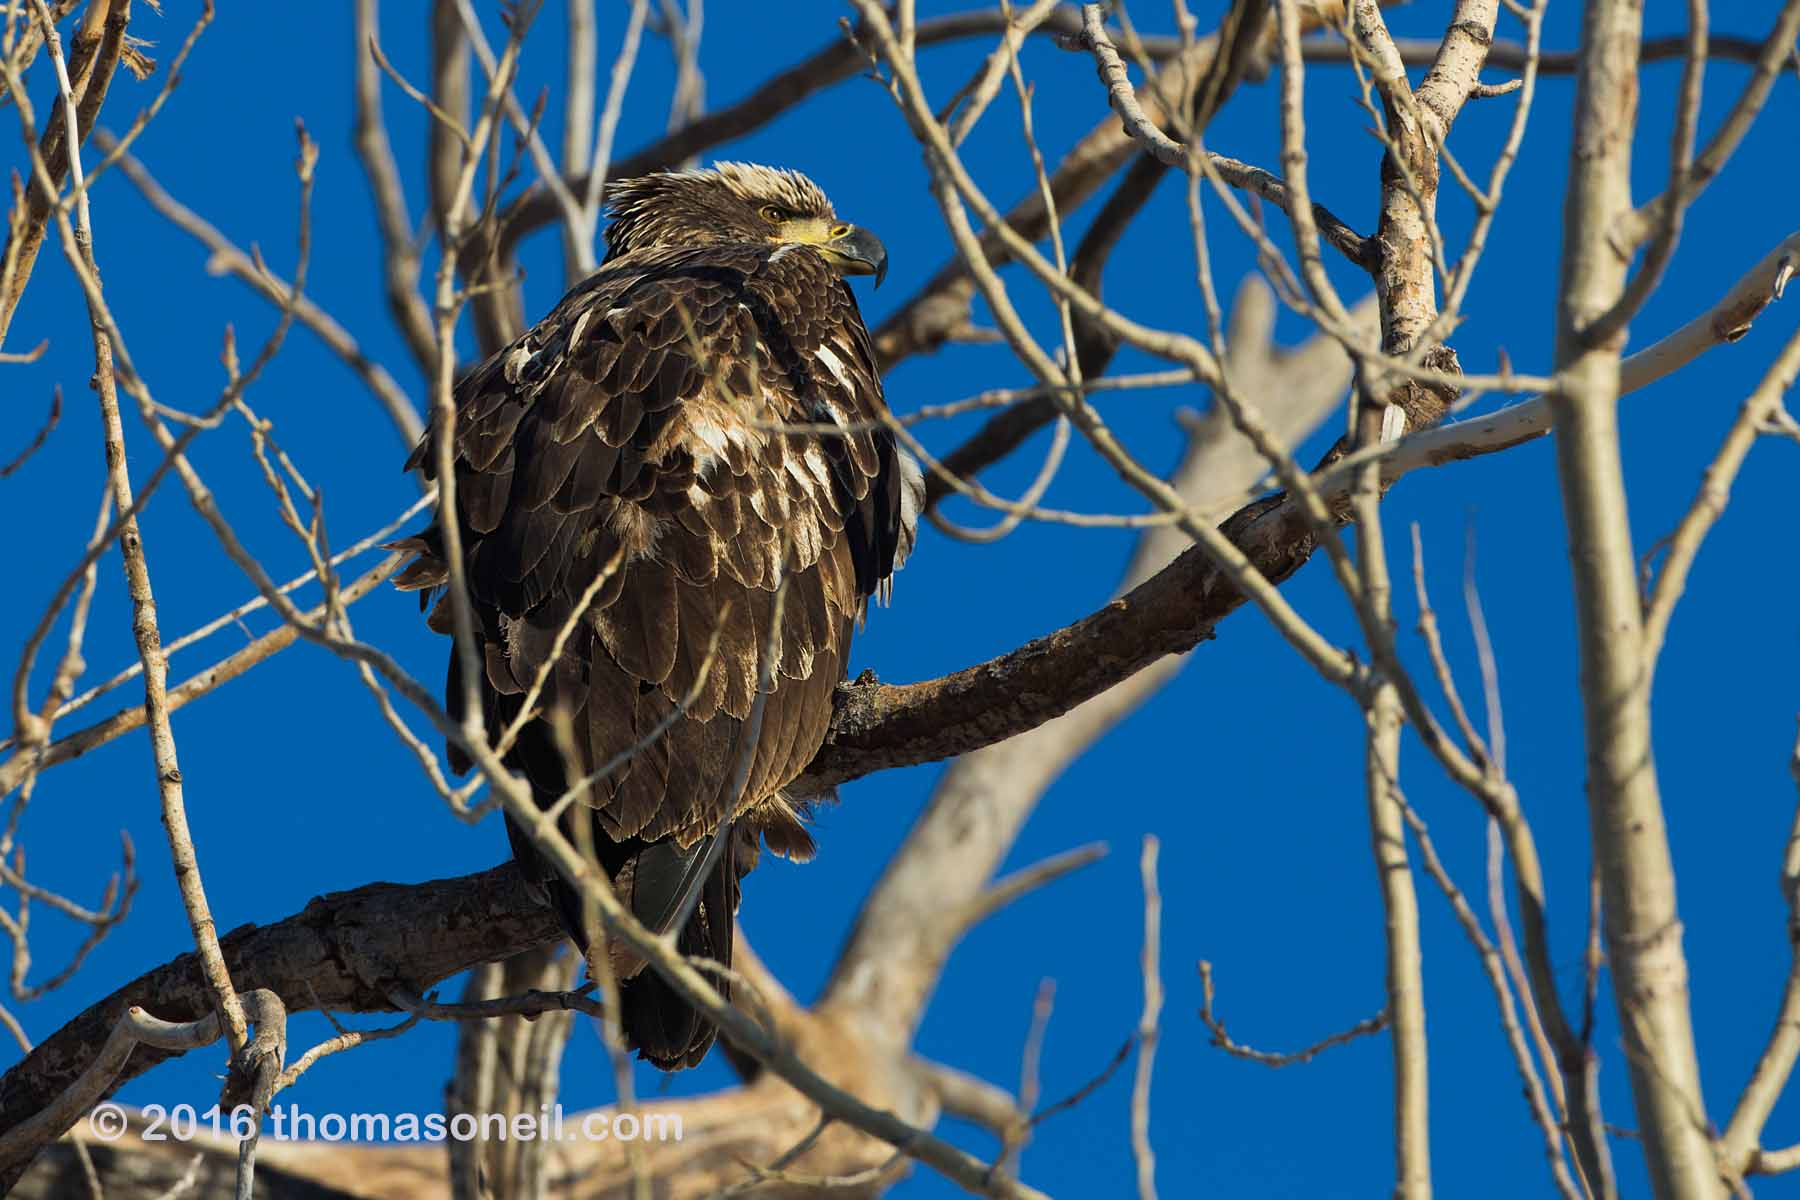 Juvenile Bald eagle, Squaw Creek National Wildlife Refuge, Missouri, January 2016.  Click for next photo.